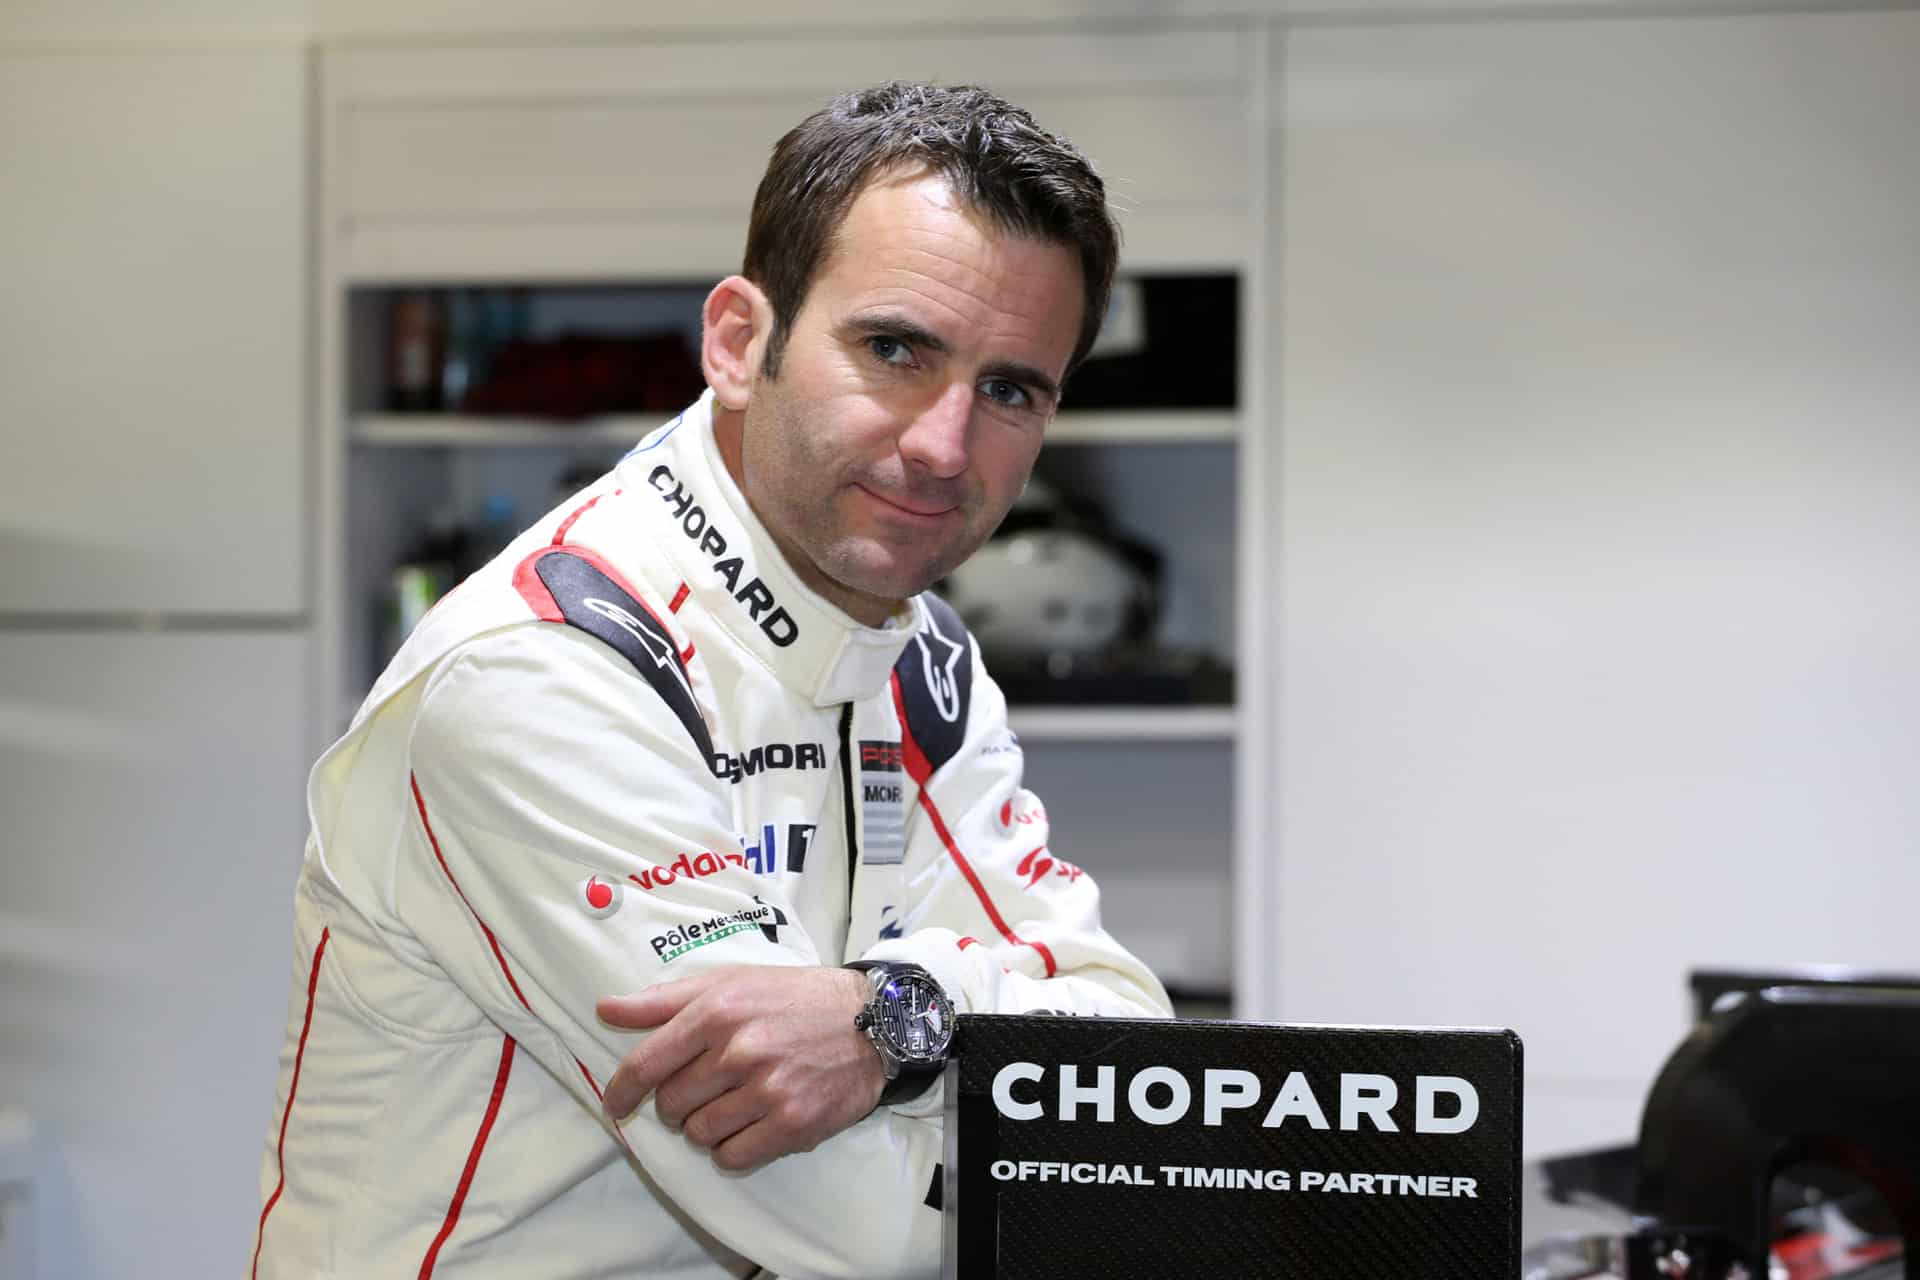 003 - Romain Dumas wearing his Superfast Watch